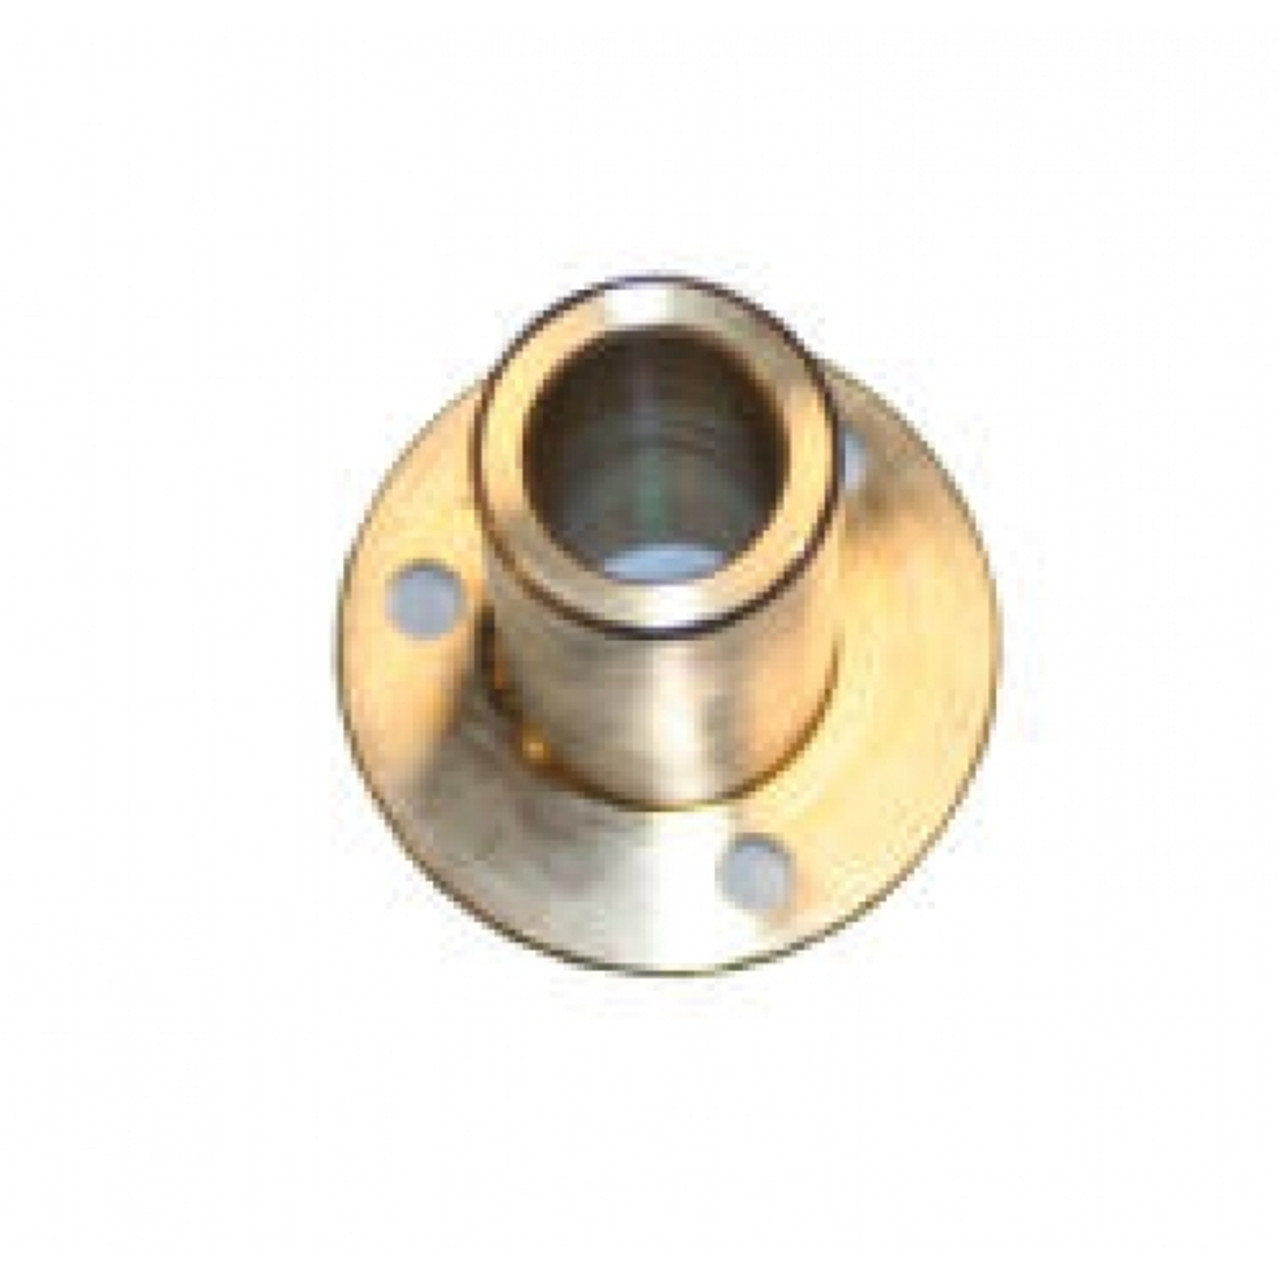 Replacement Agitator Bushing For American Harvest 6037